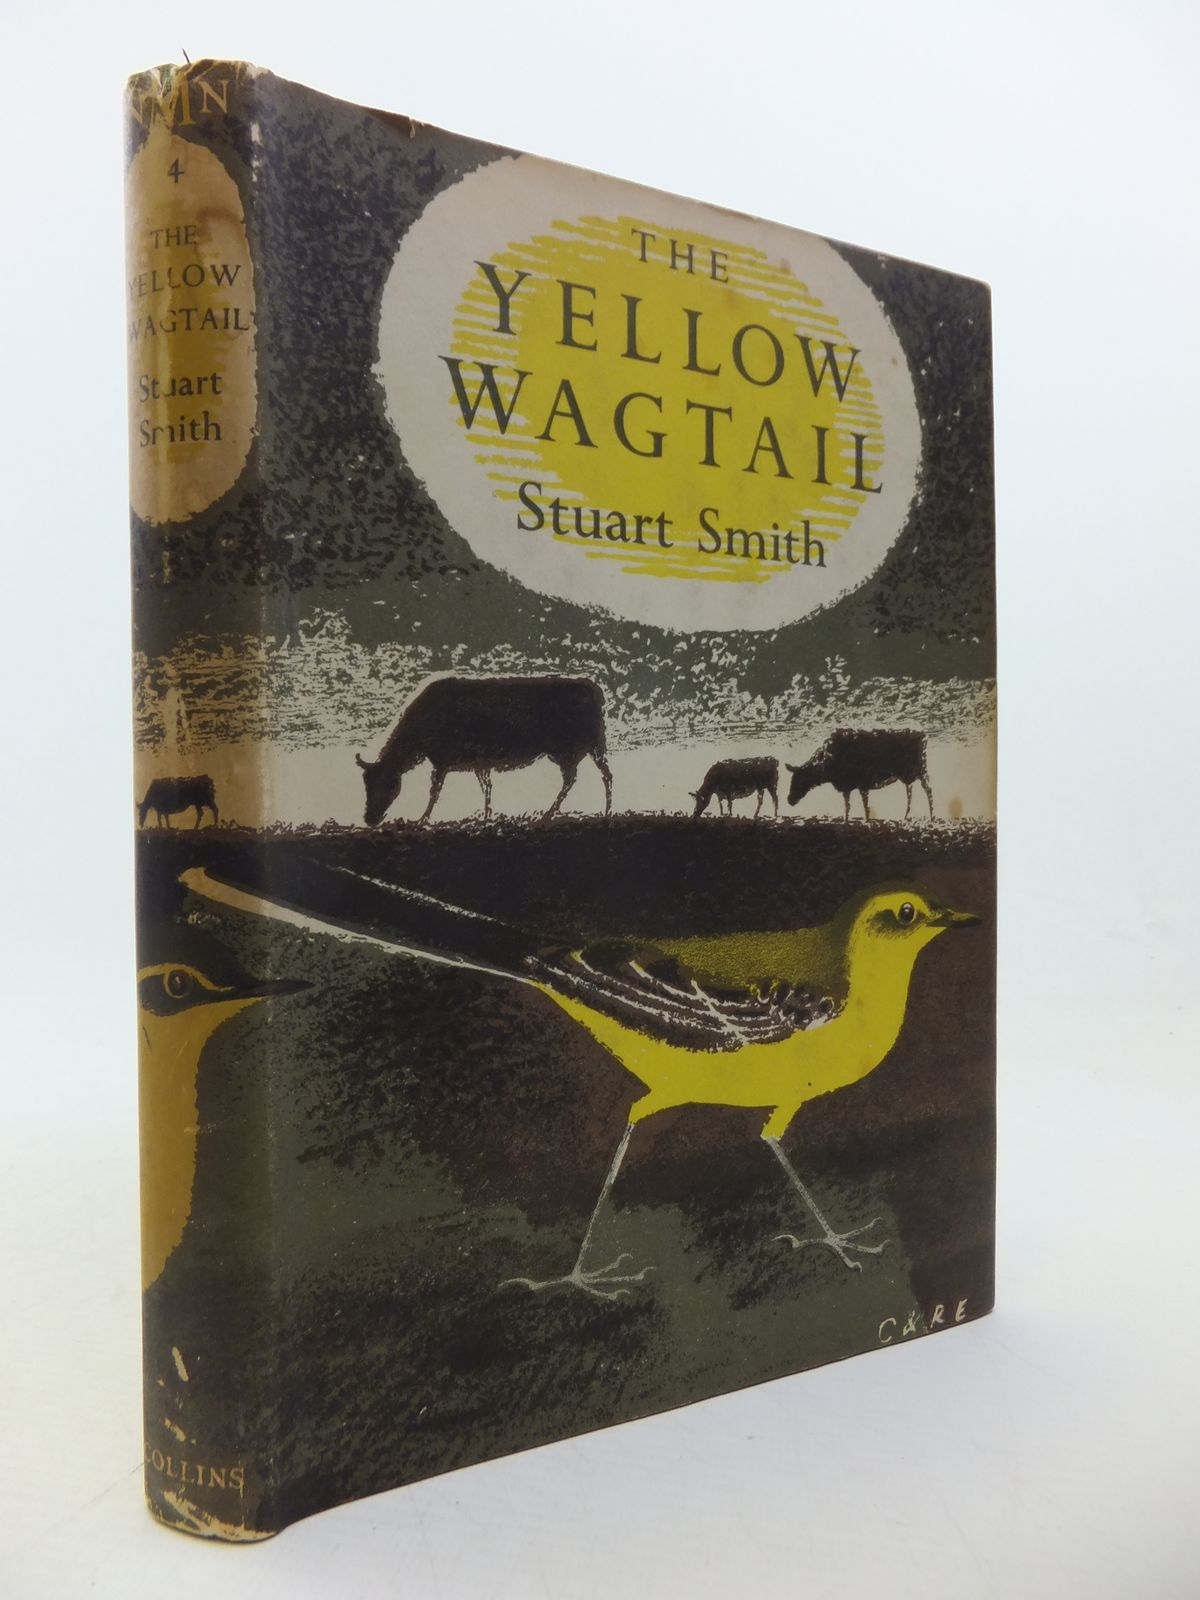 Photo of THE YELLOW WAGTAIL (NMN 4) written by Smith, Stuart illustrated by Bradbury, Edward published by Collins (STOCK CODE: 1808766)  for sale by Stella & Rose's Books